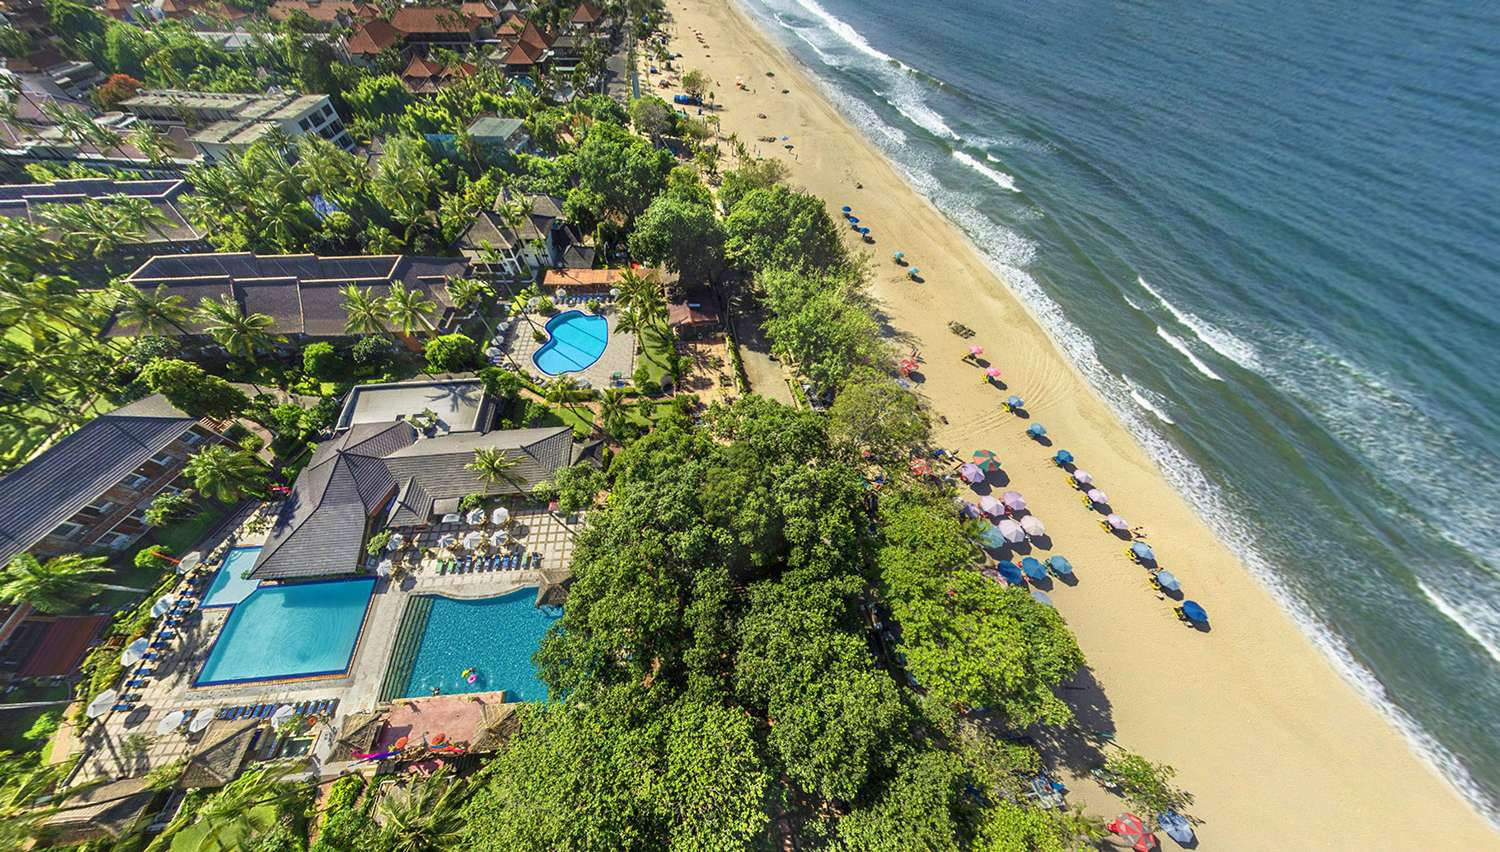 The Jayakarta Bali Beach Resort & Spa (Бали, Индонезия)